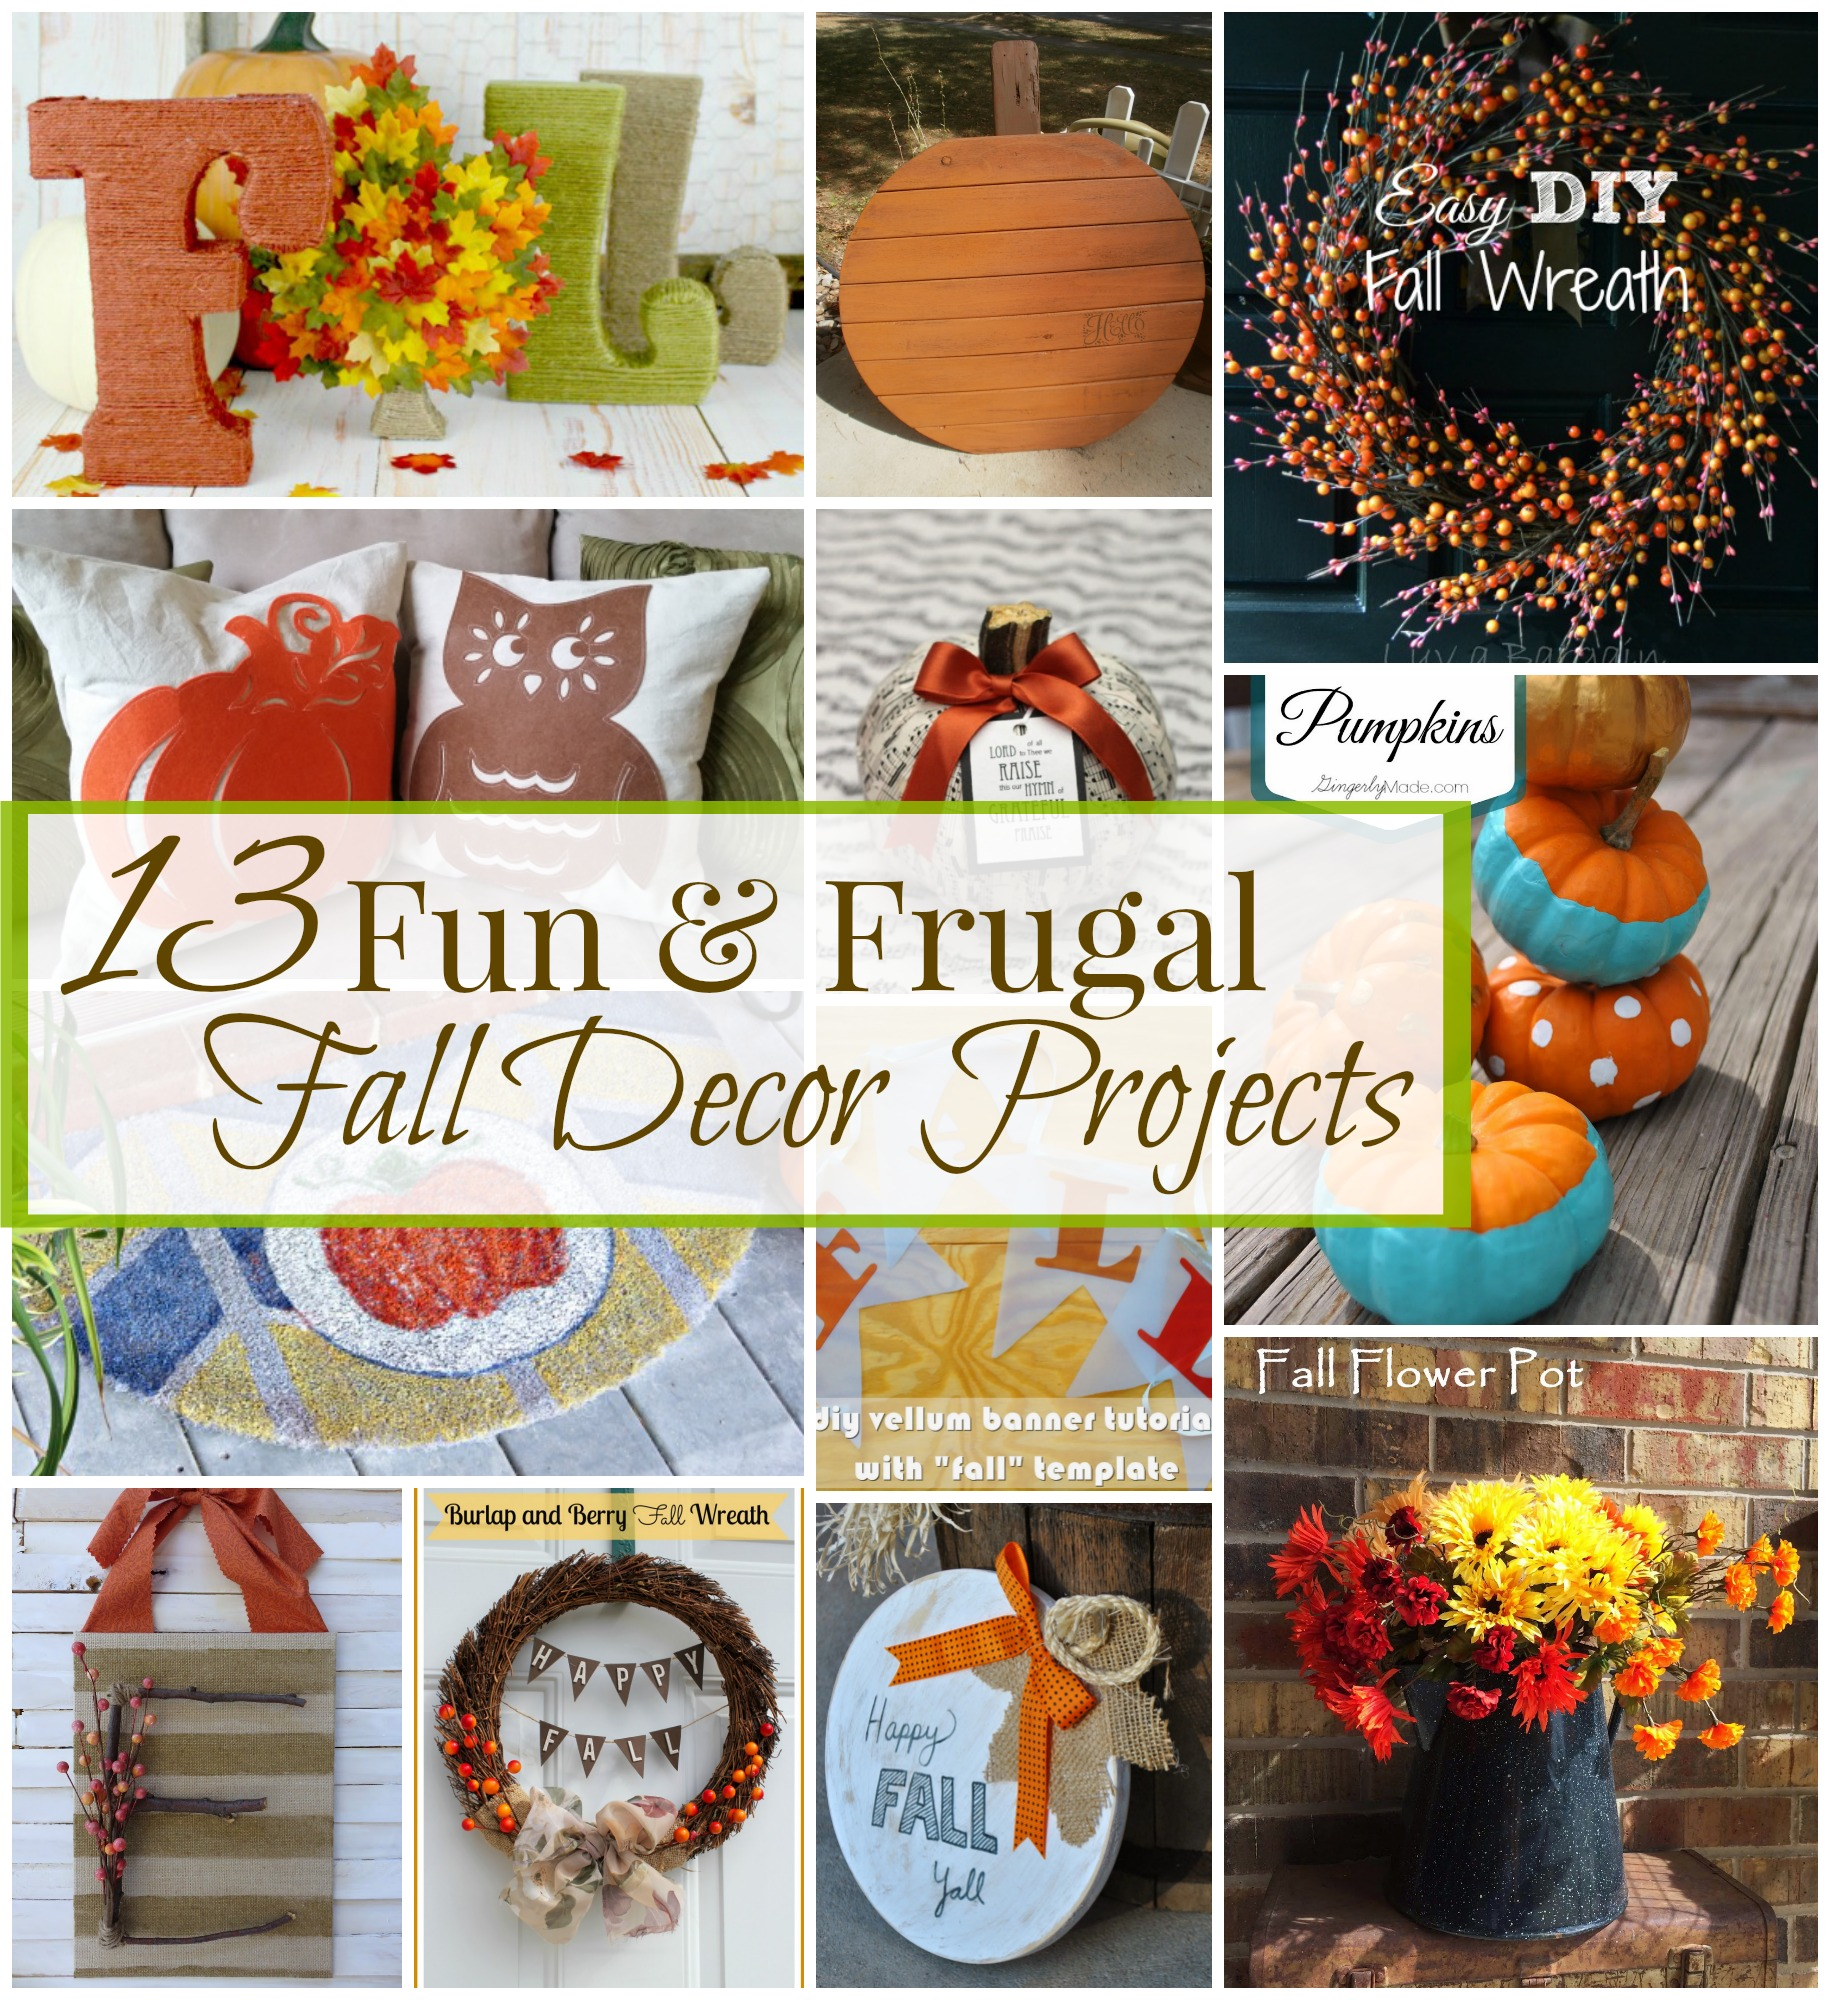 13 fun and frugal fall projects by 3 Little Greenwoods